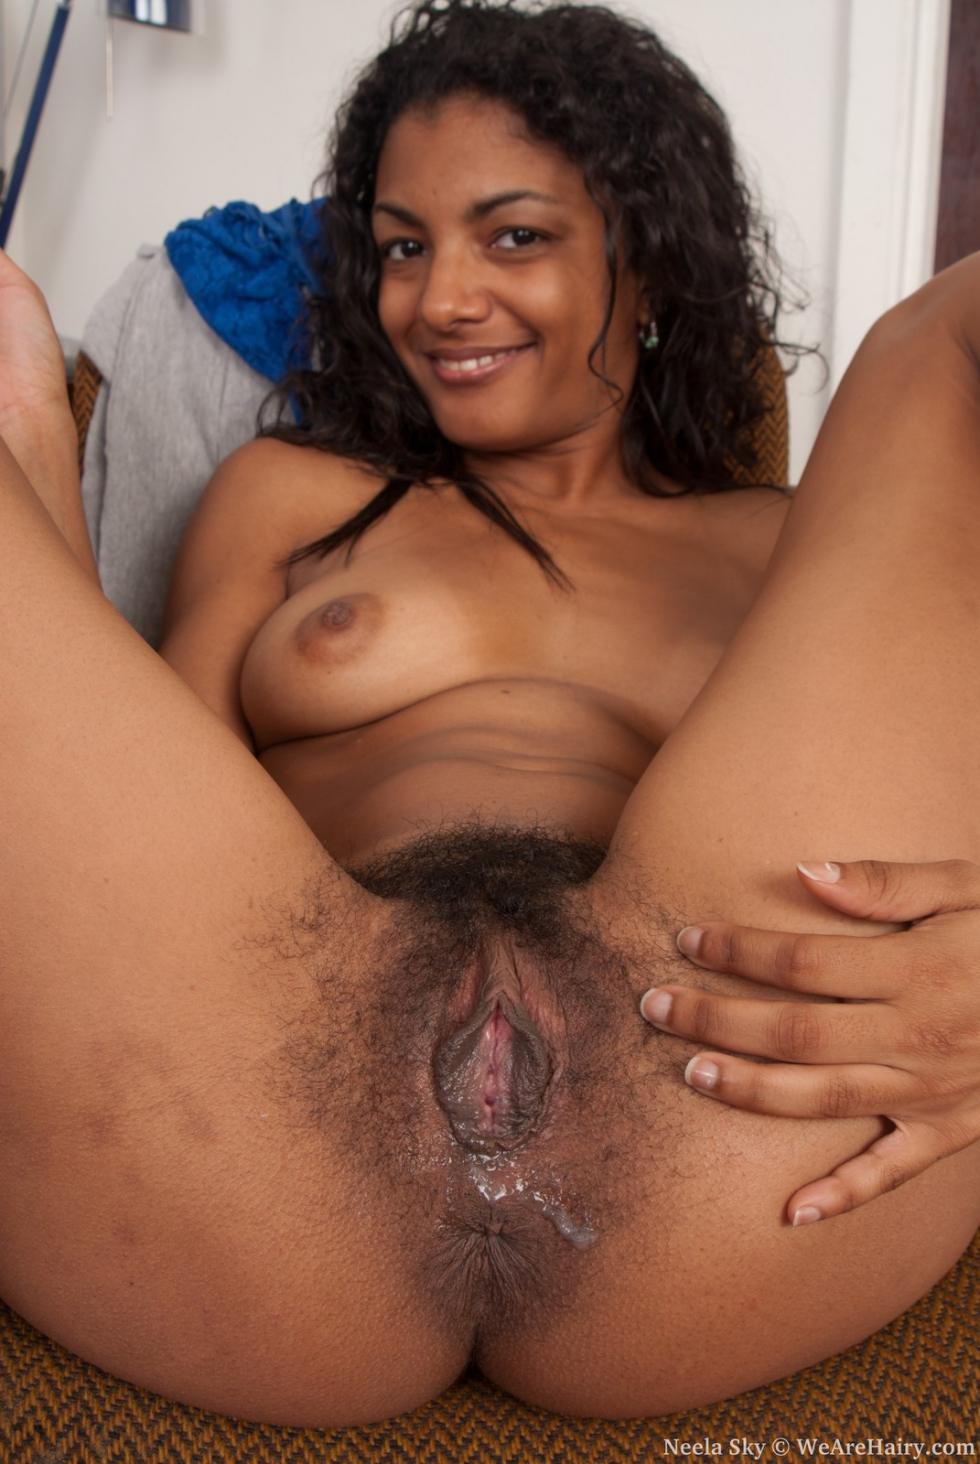 ... precious time and get Hairy Pussy by joining WeAreHairy right now